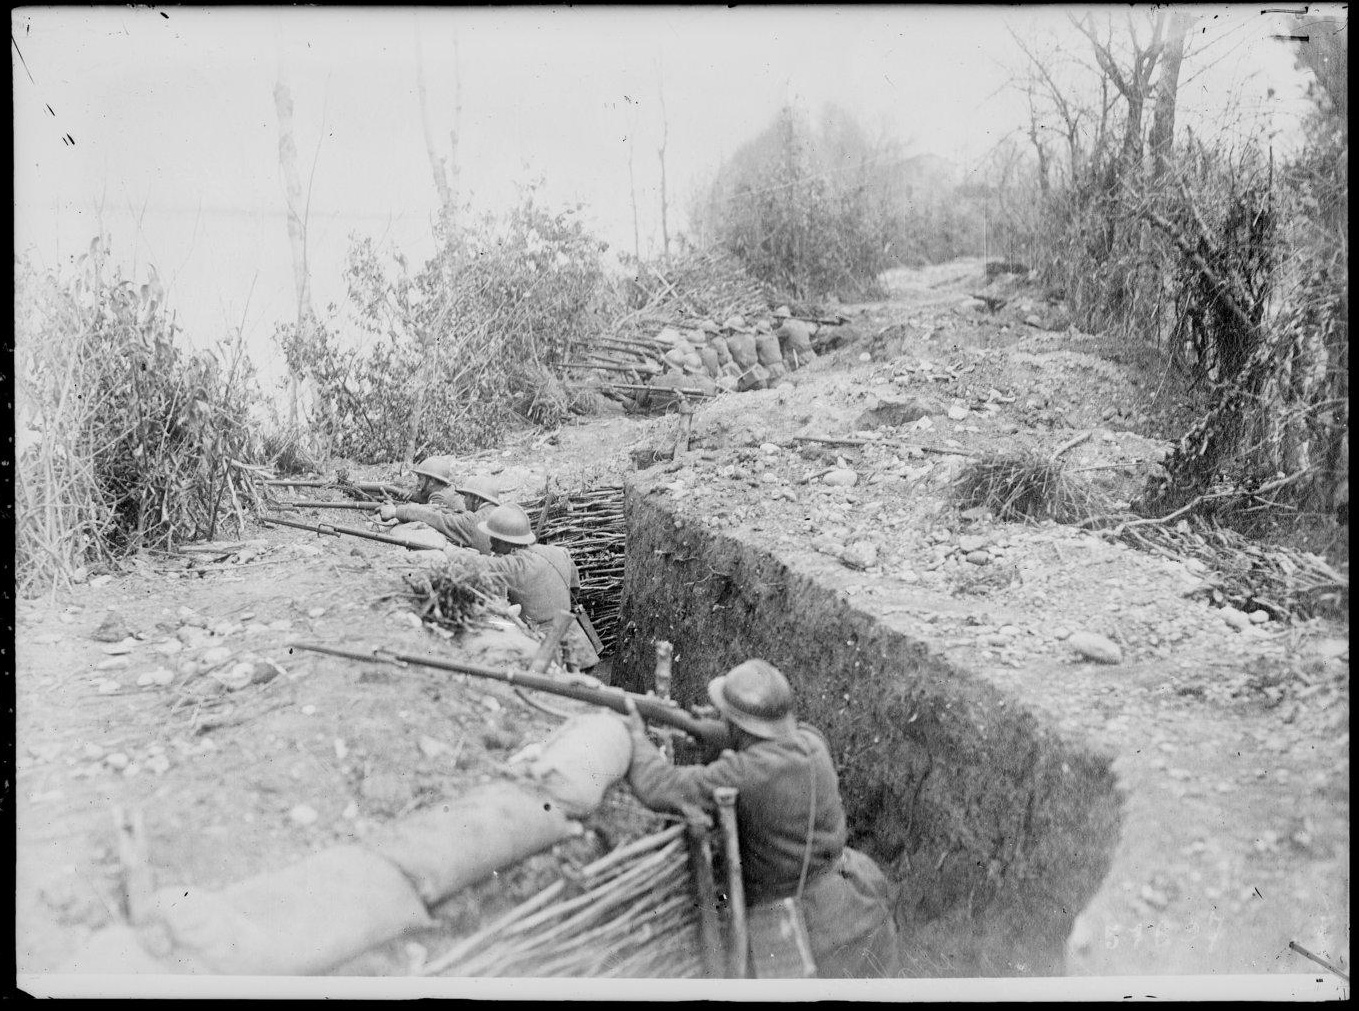 A trench at the Italian Front in May 1918. The soldiers are equipped with the Lebel rifle and the Adrian helmet, both issued in 1915.